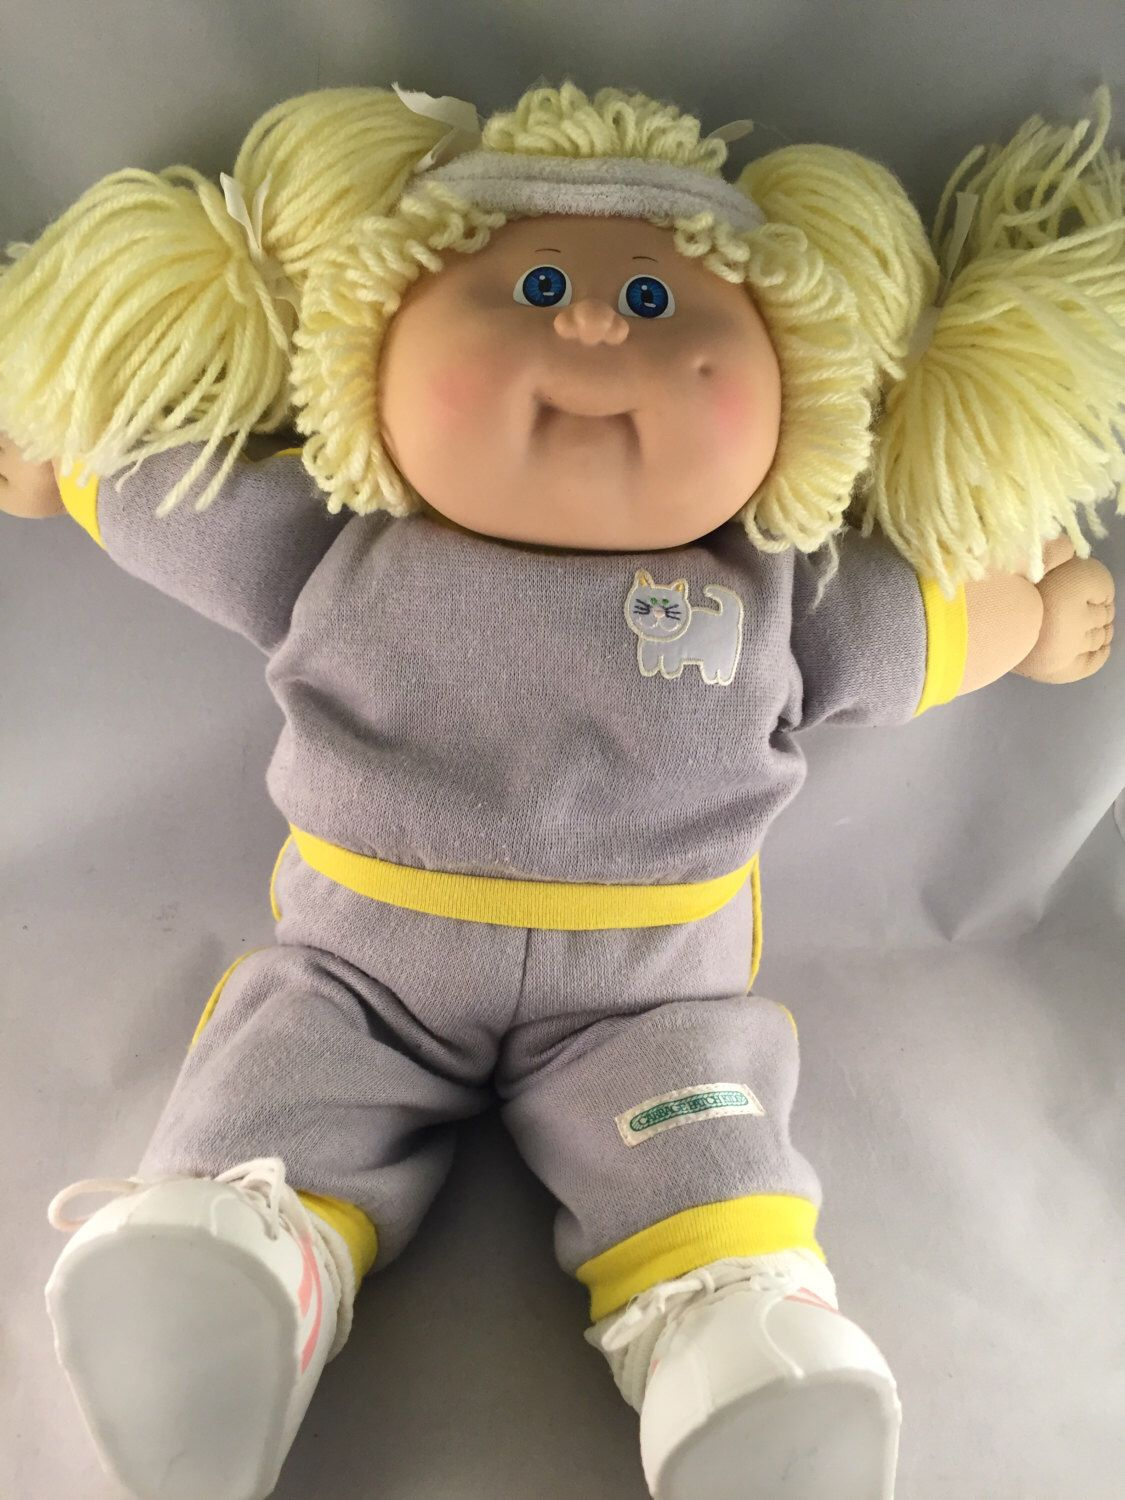 Vintage Cabbage Patch Doll 1980s Xavier Roberts Signed Blonde Hair Blue  Eyed Collector Dol… | Vintage cabbage patch dolls, Cabbage patch dolls, Cabbage  patch babies